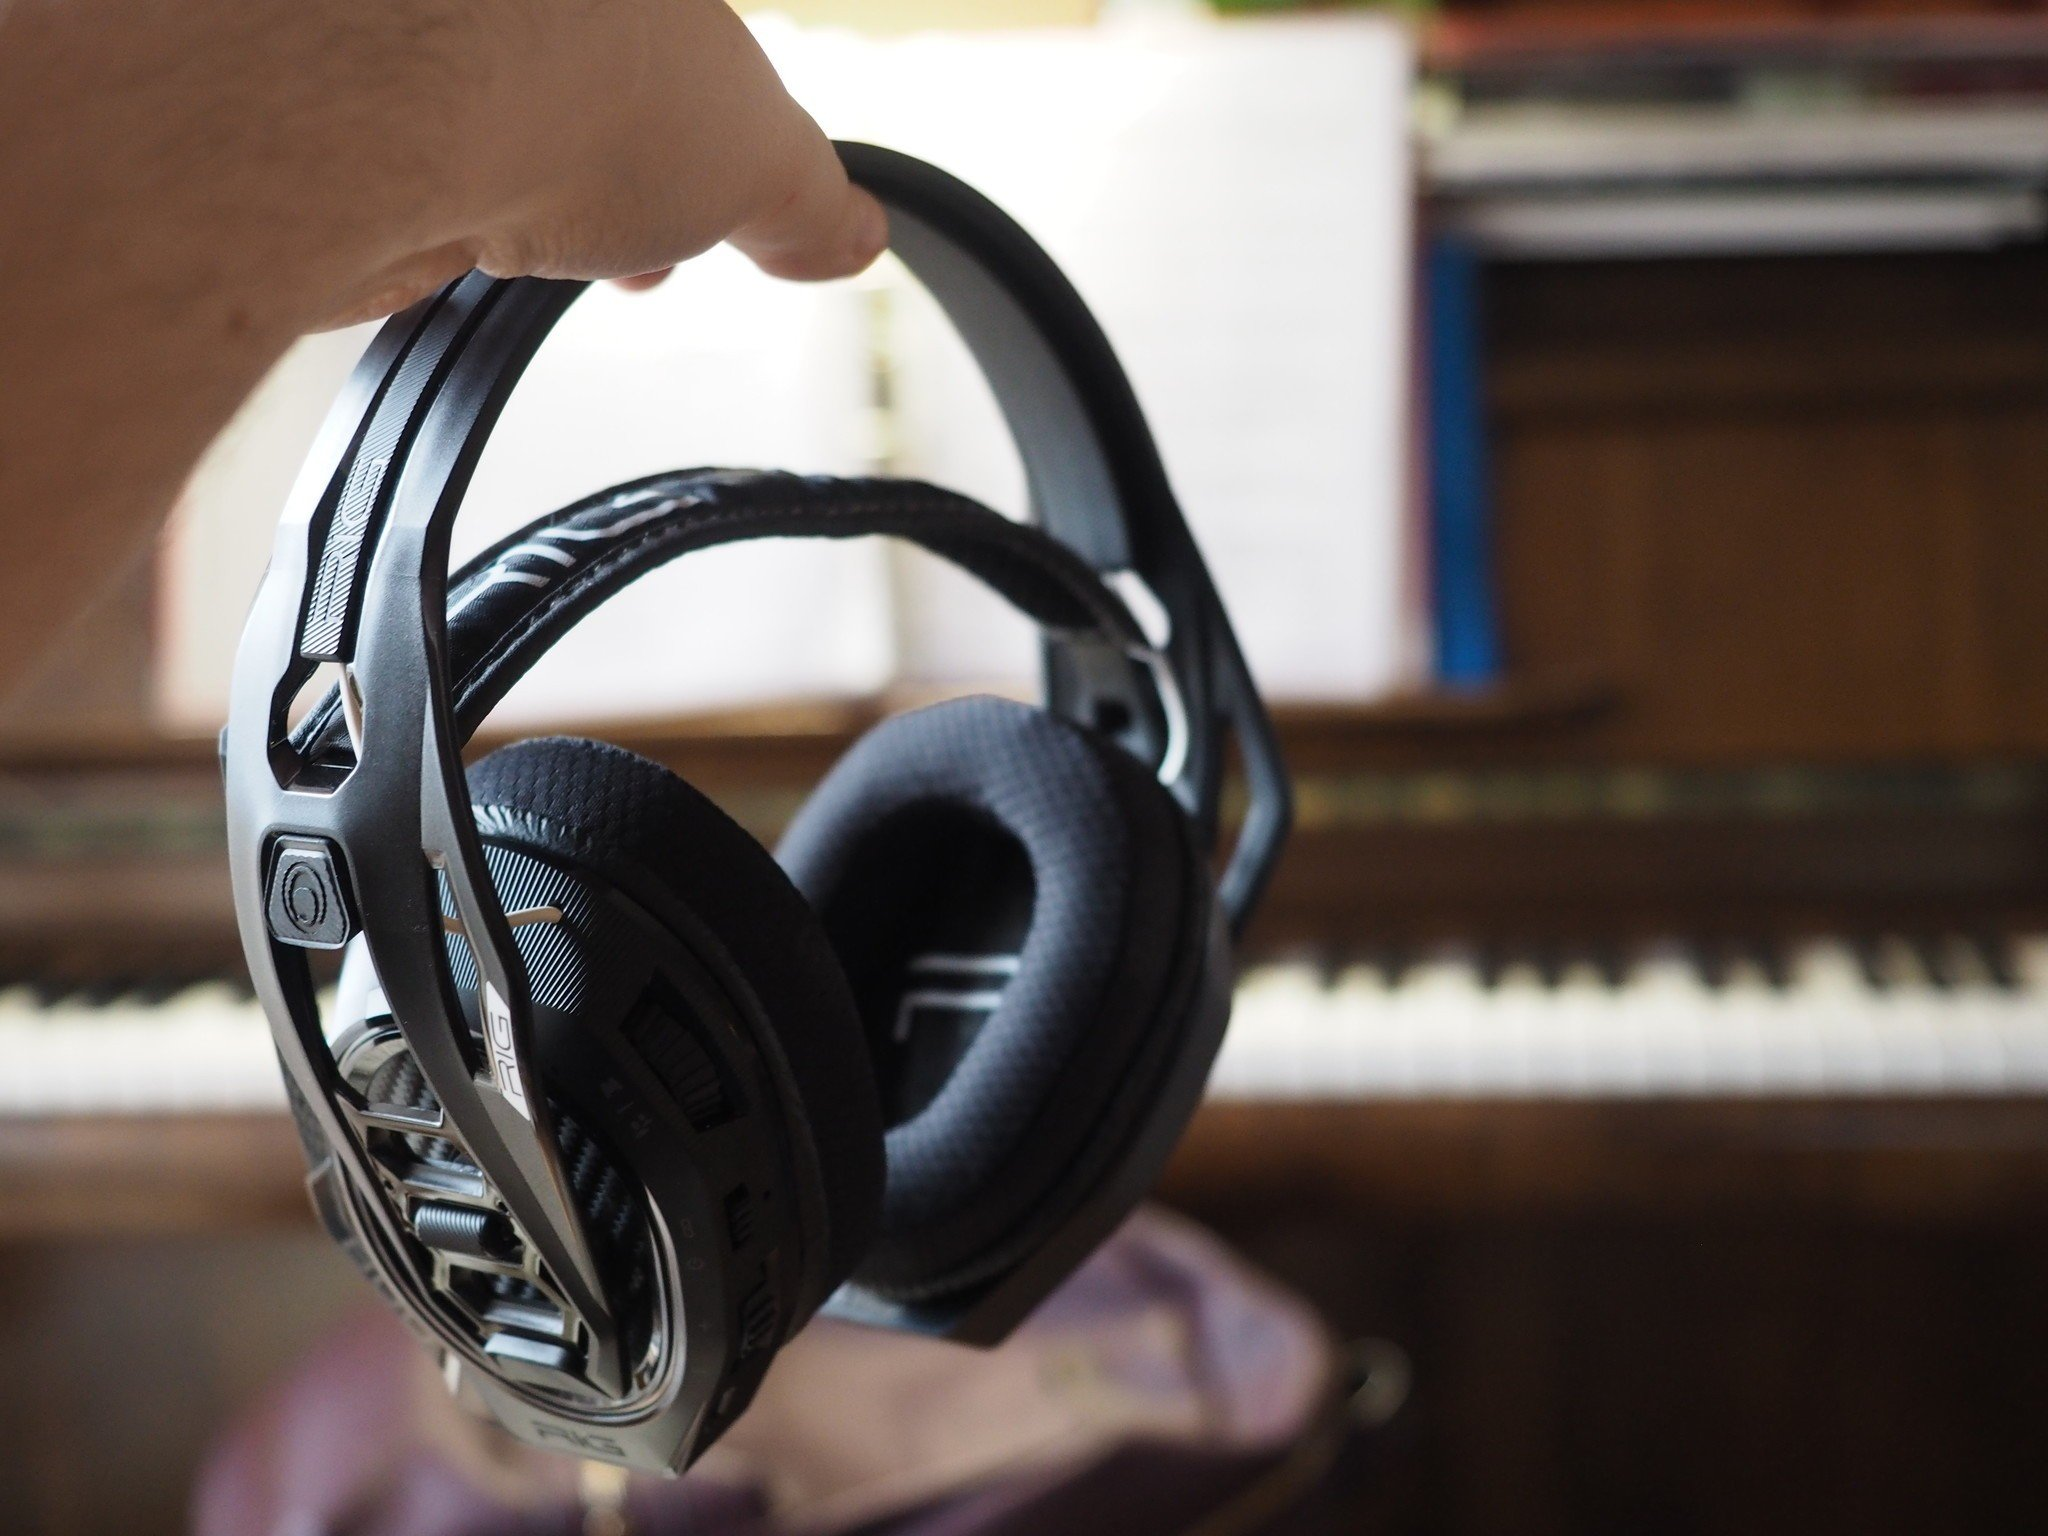 plantronics rig 800lx headset review no nonsense wireless audio for xbox and pc [ 1600 x 1200 Pixel ]